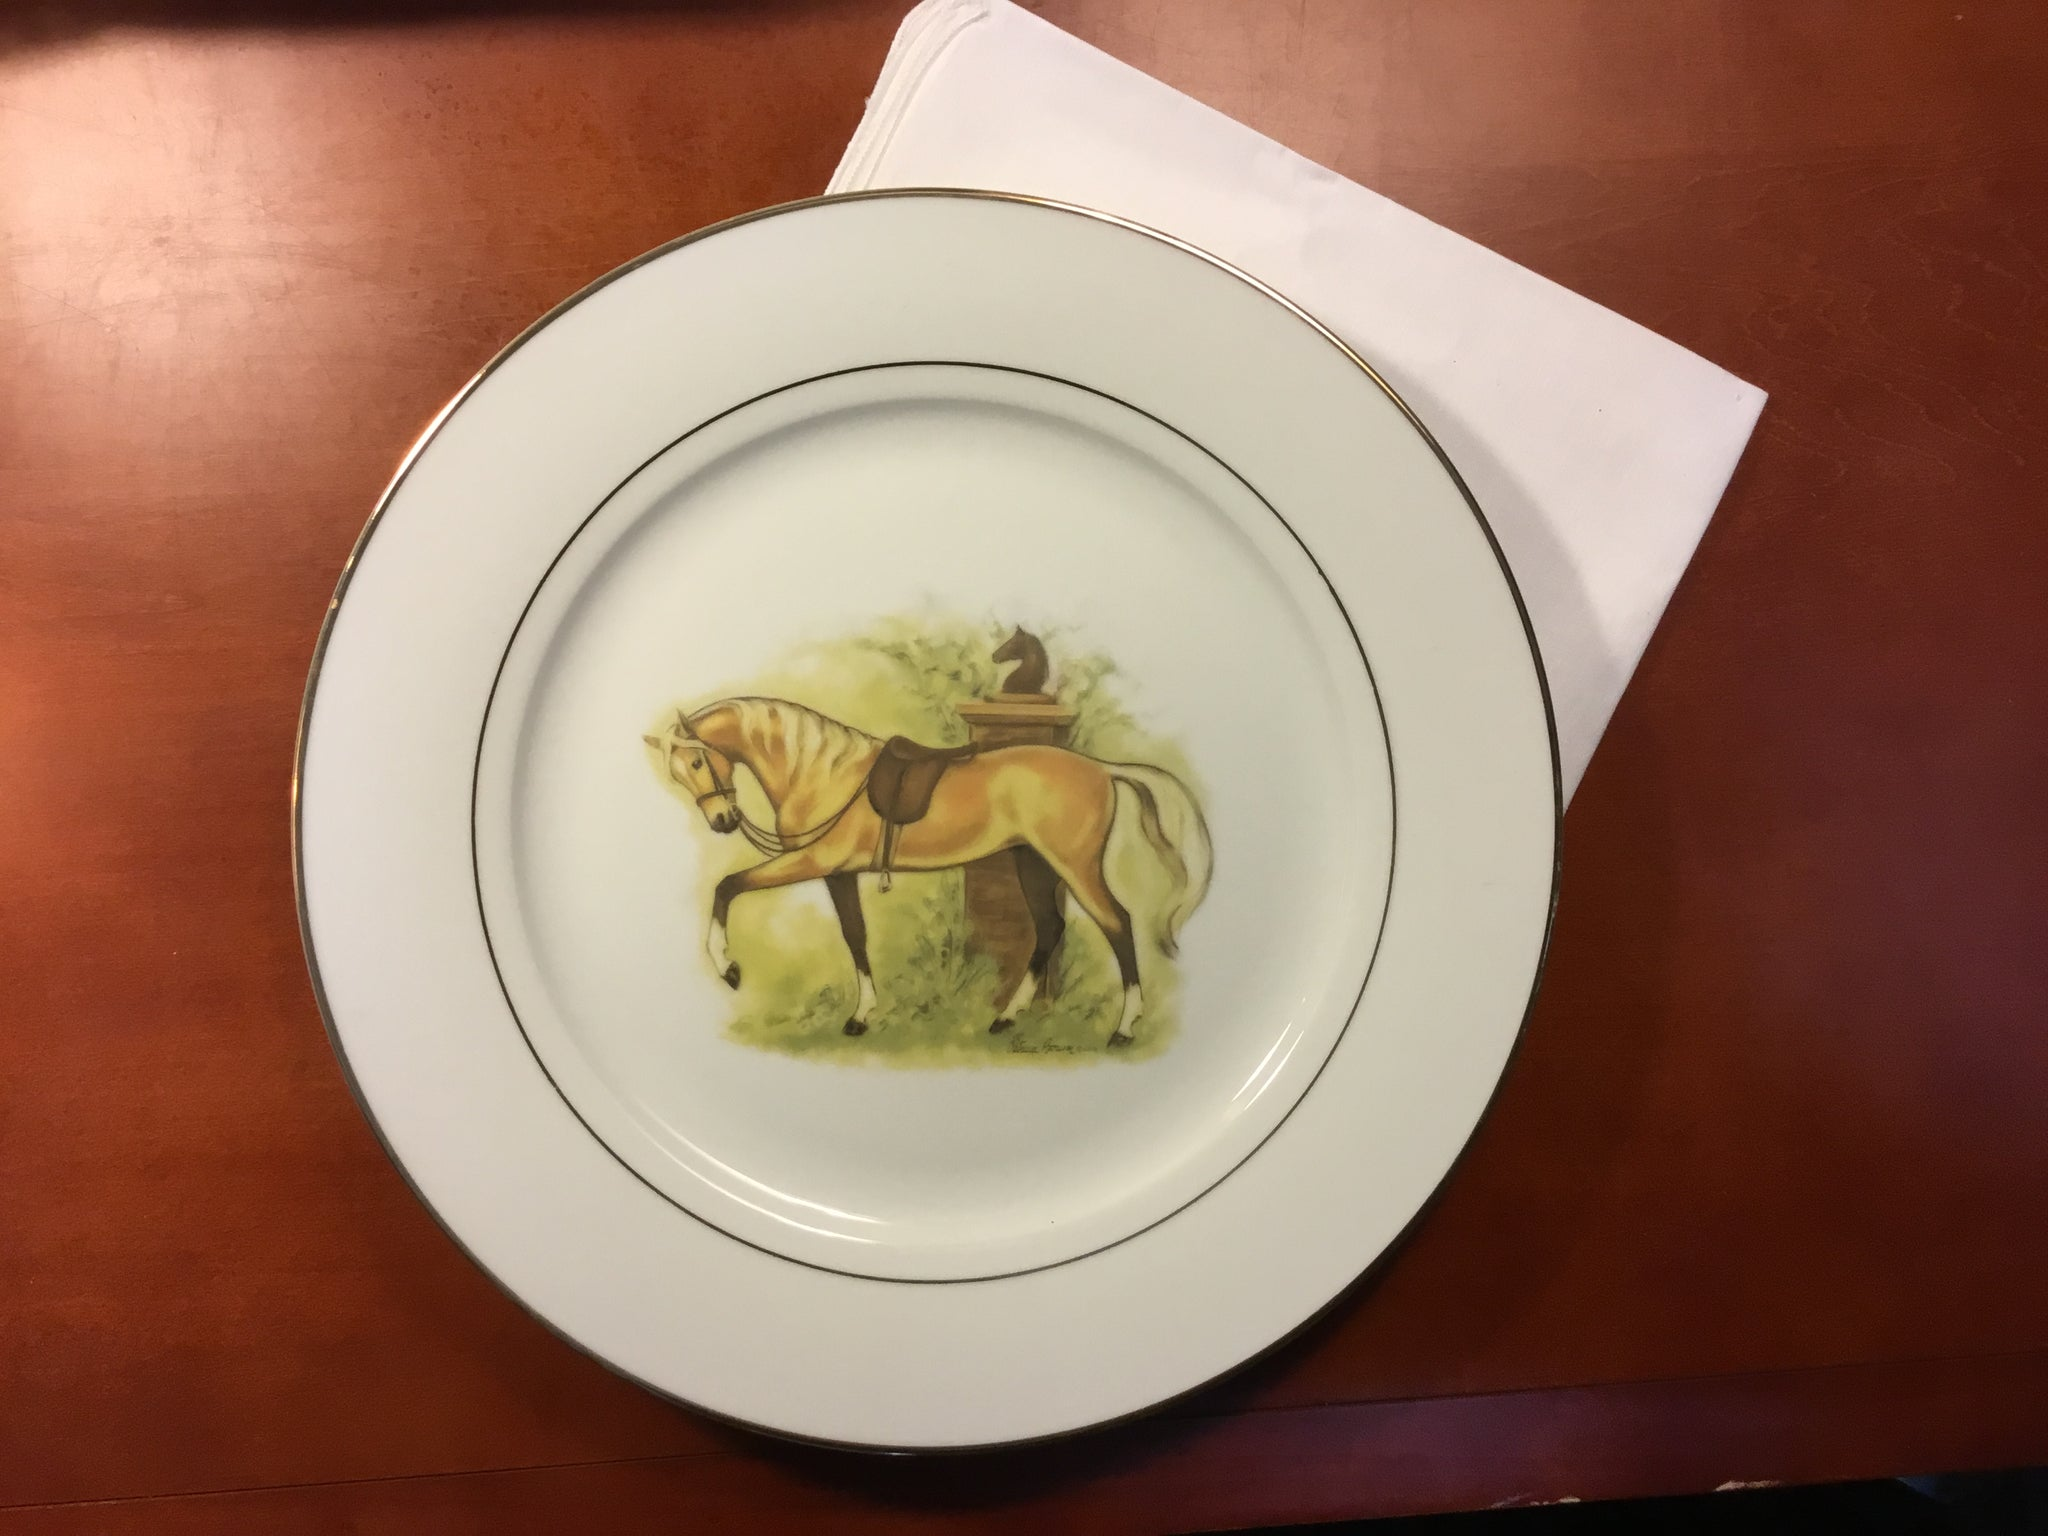 Palomino horse dinner plates, set of 6, 10.75 inch